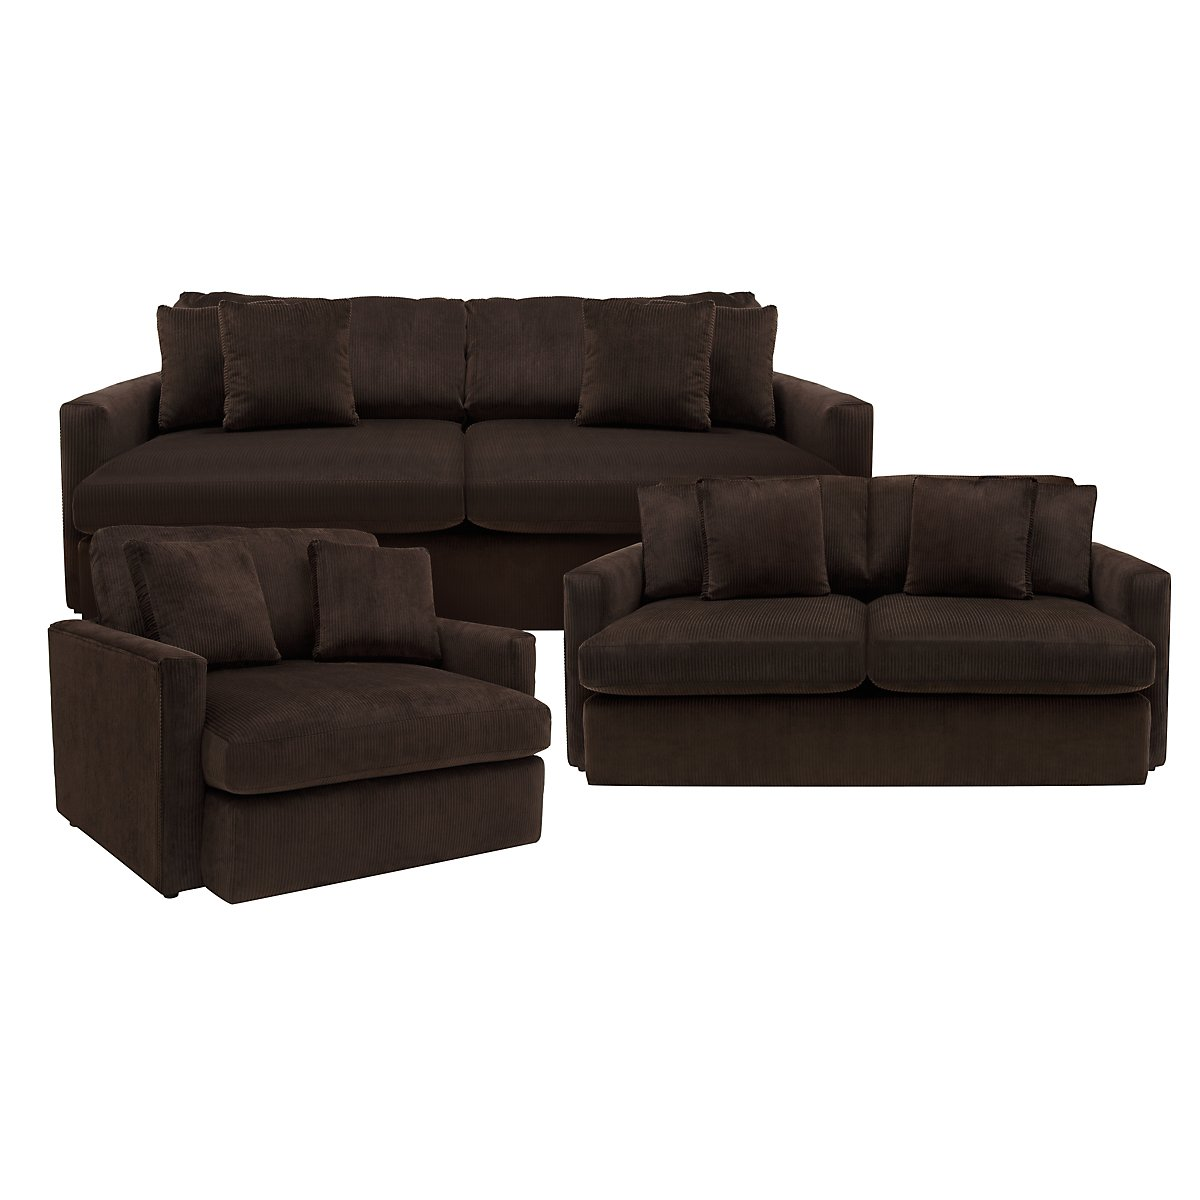 Dark brown microfiber sofa thesofa Brown microfiber couch and loveseat